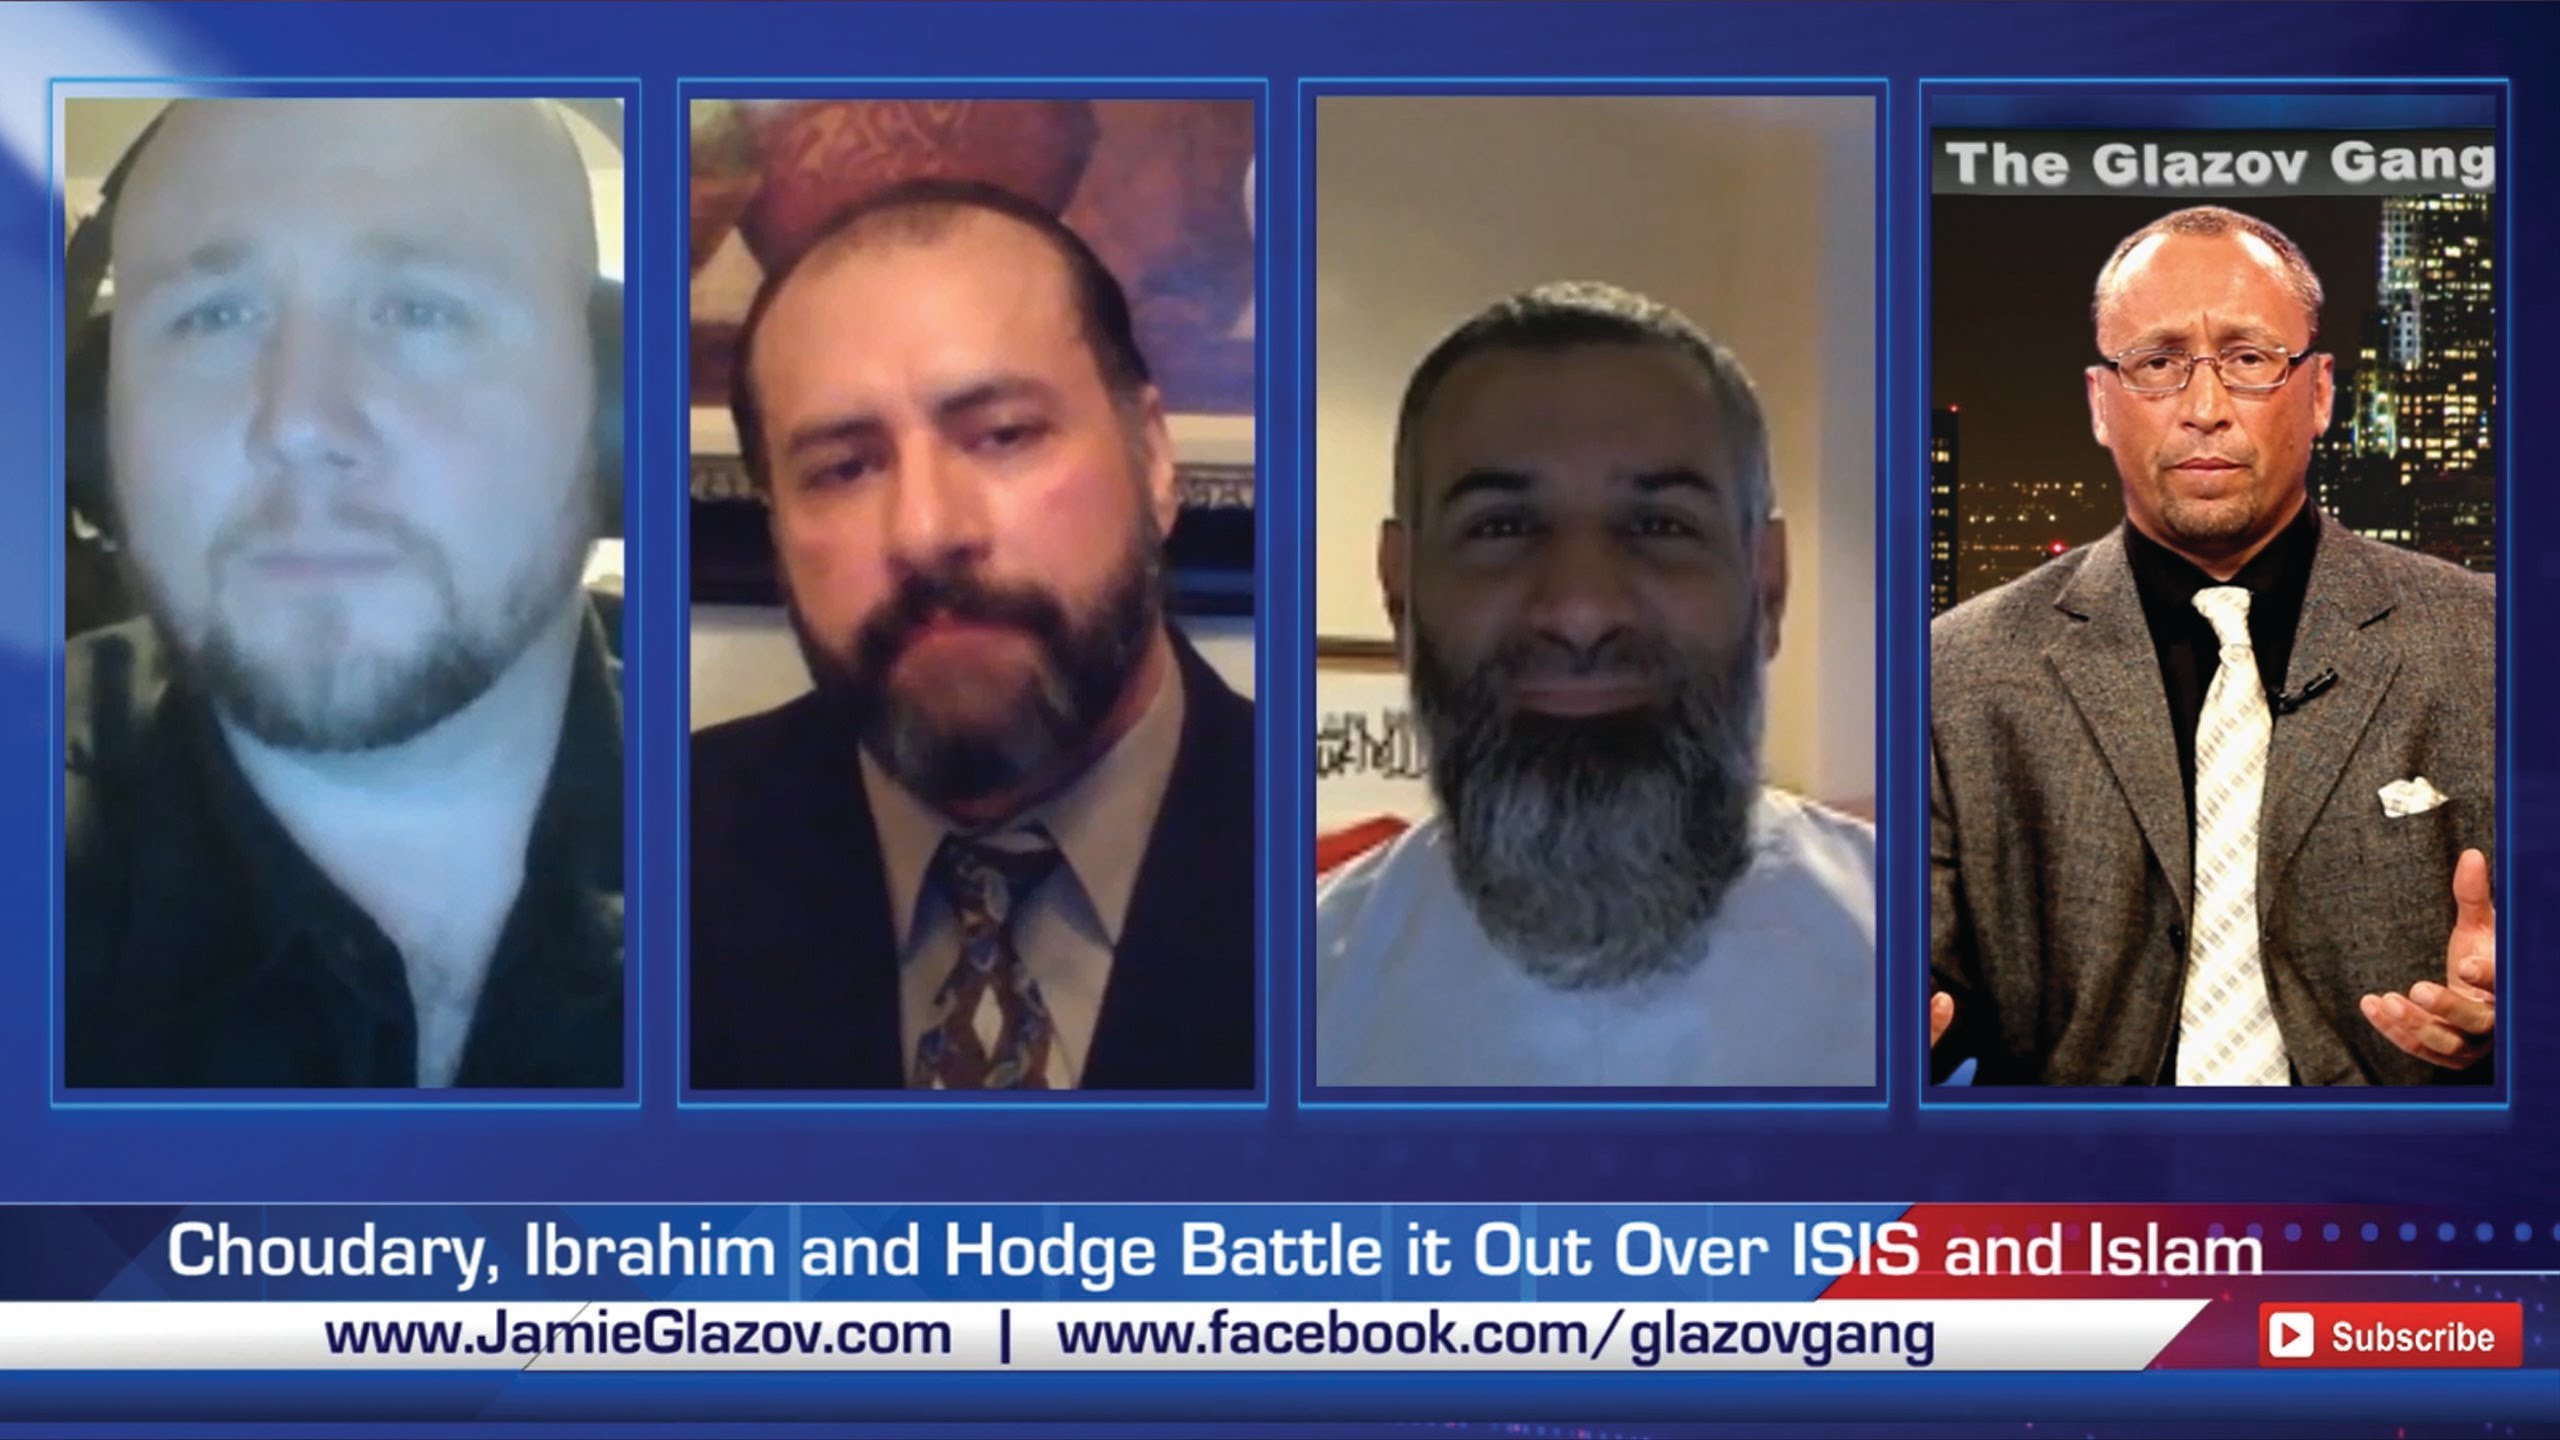 Choudary, Ibrahim and Hodge Battle it Out Over ISIS and Islam